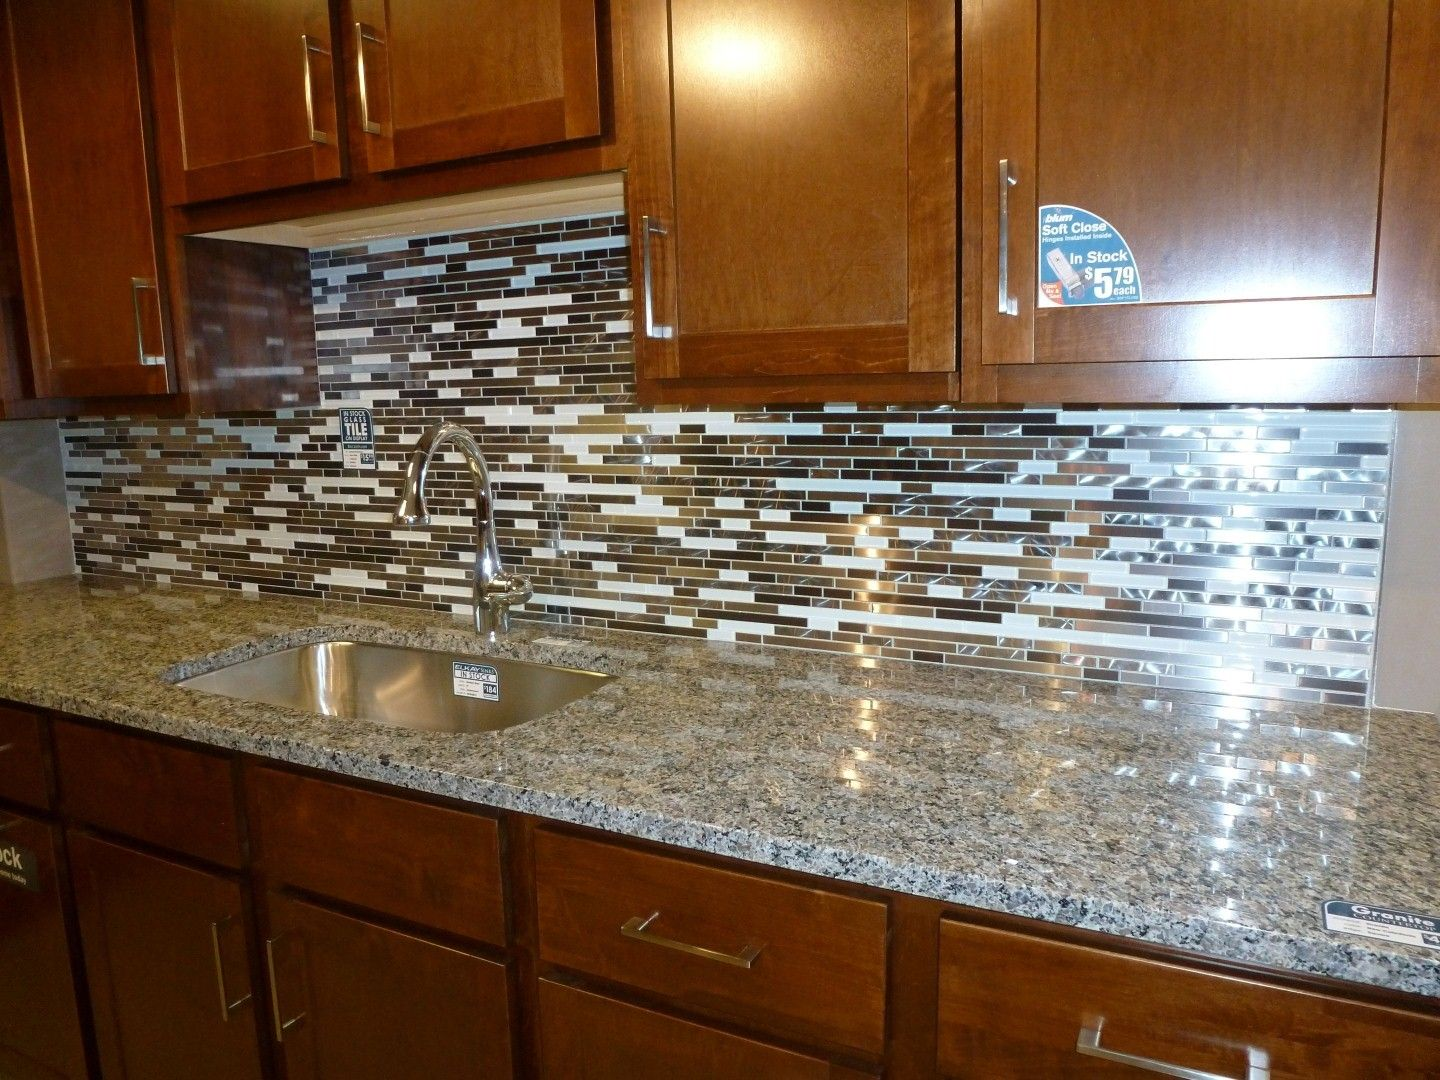 Kitchen Counter Backsplash Ideas Pictures Glass Tile Kitchen Backsplashes Pictures Metal And White